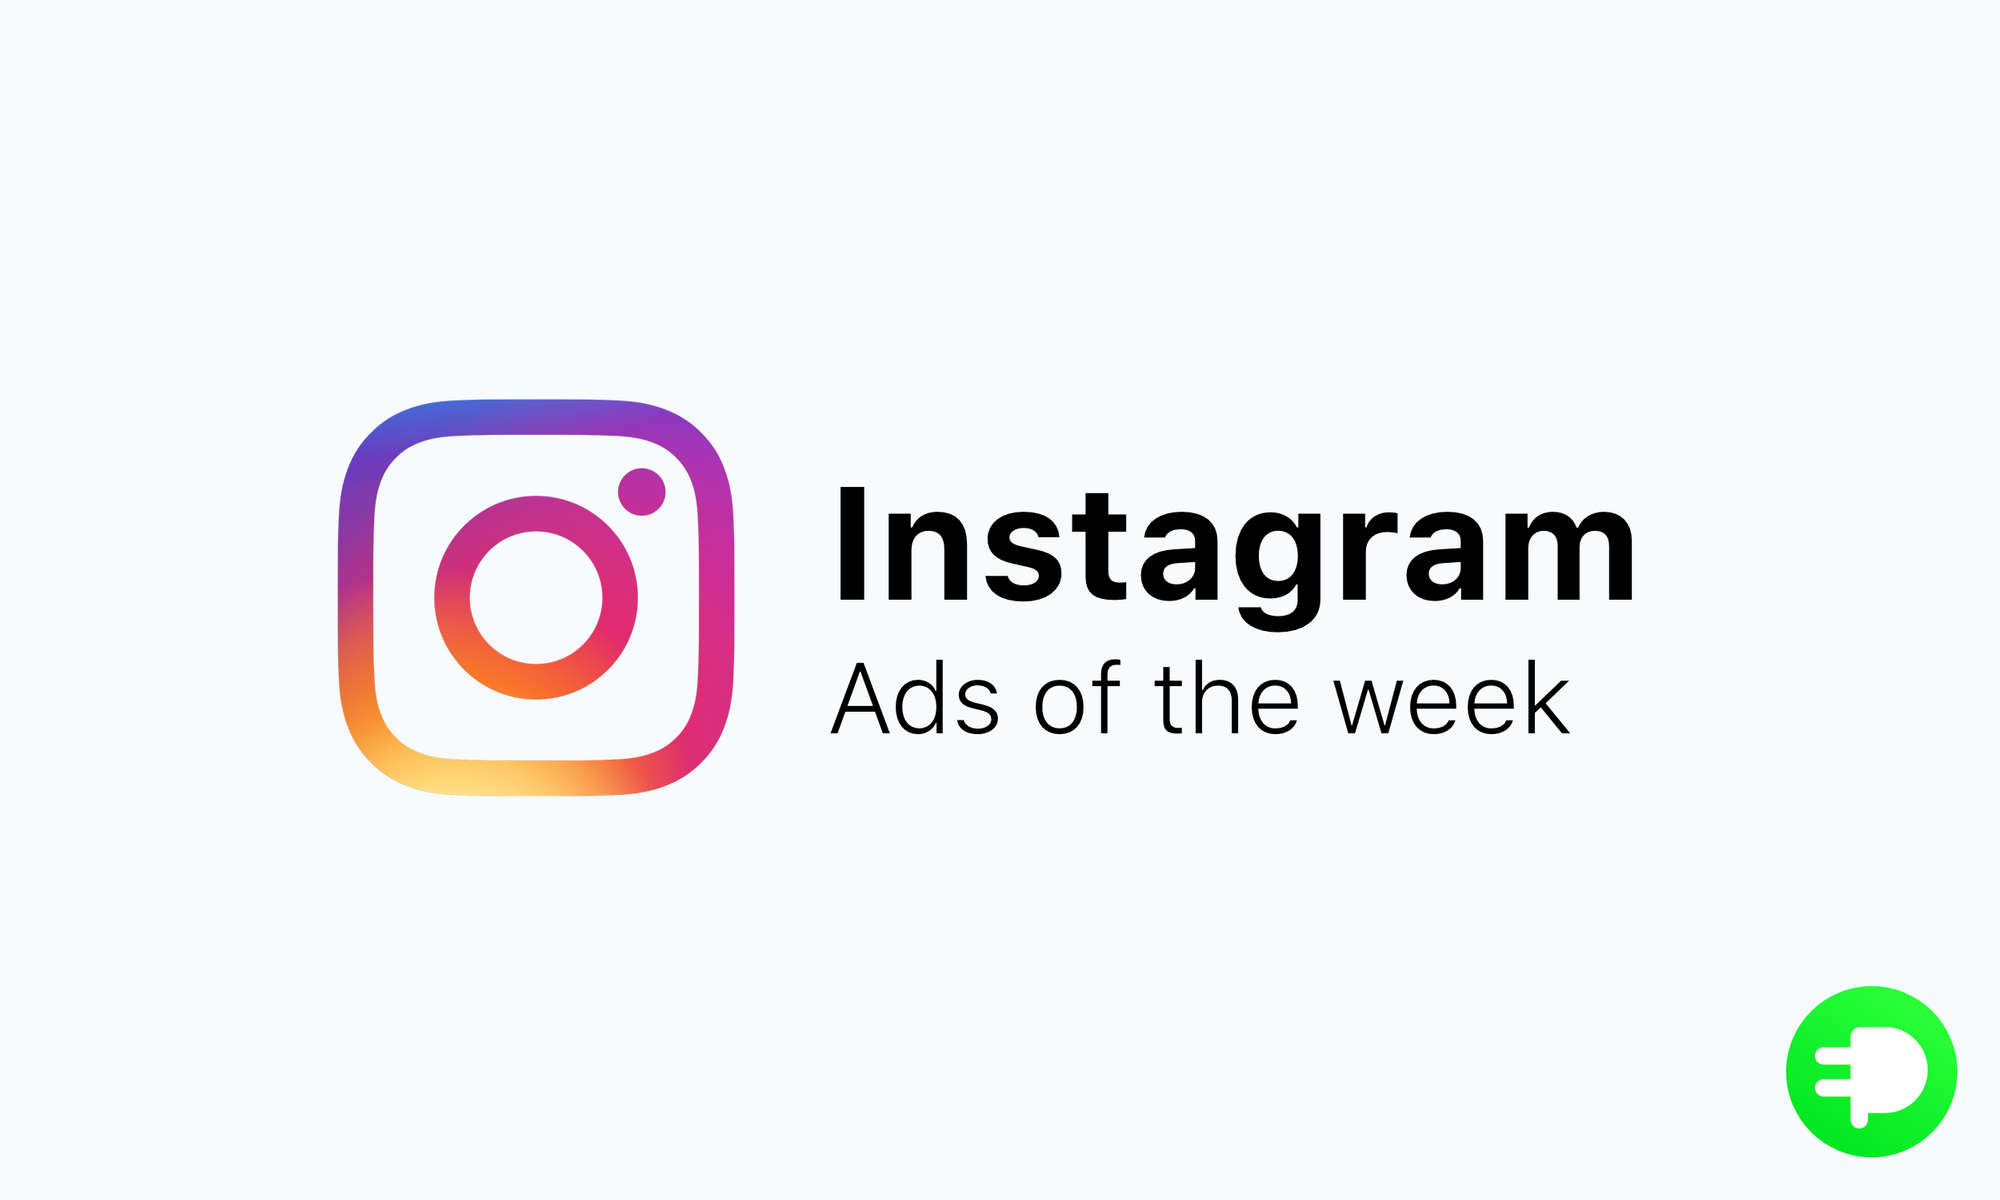 Instagram Ads of the week